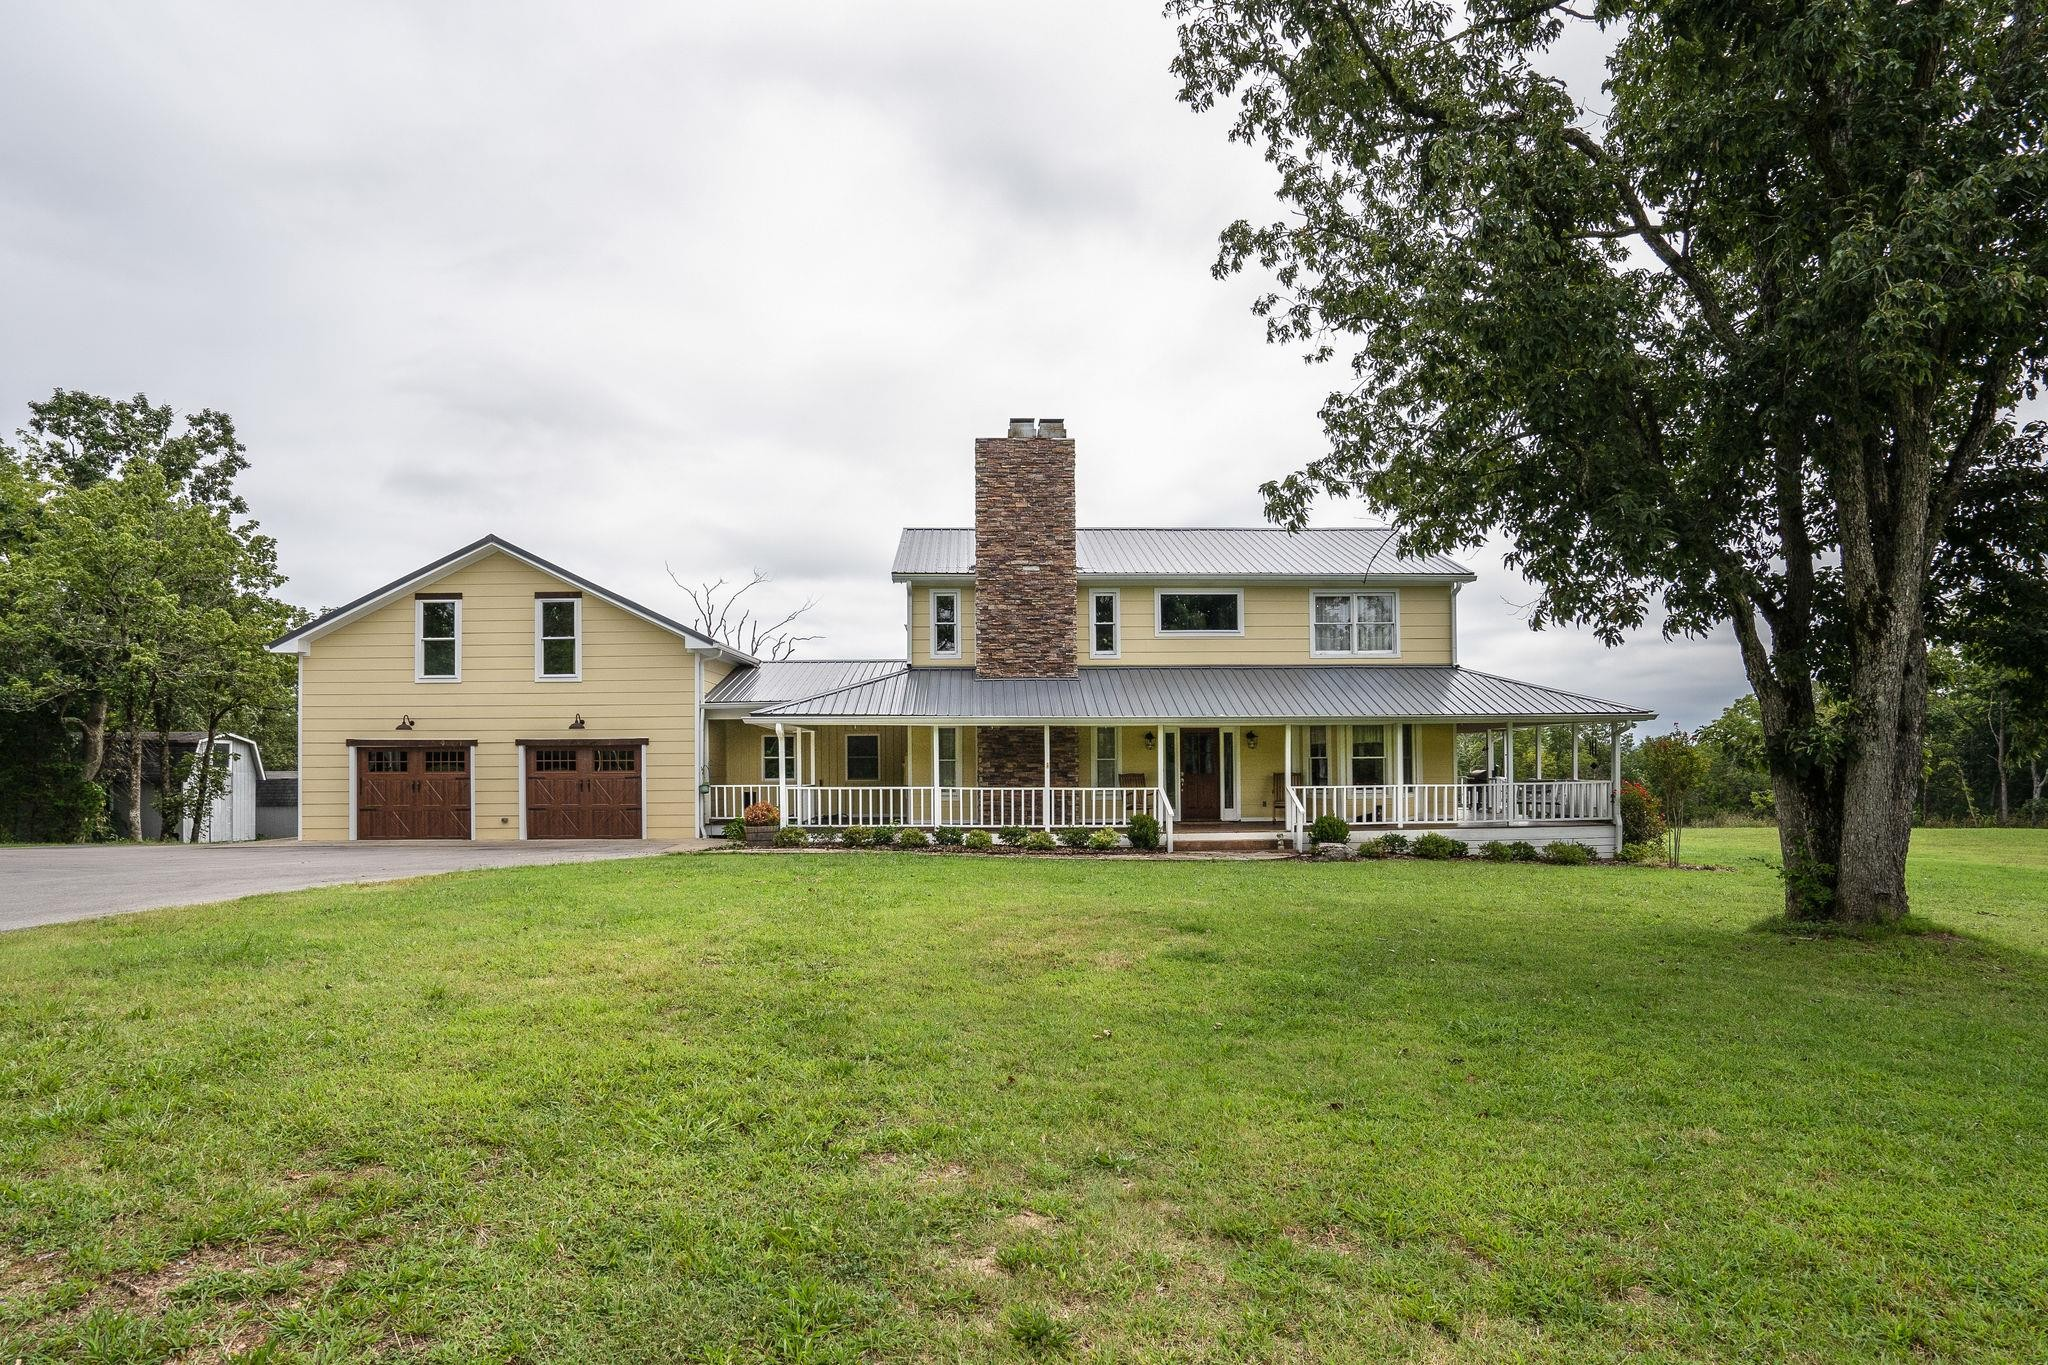 265 Forest Trl, Brentwood, TN 37027 - Brentwood, TN real estate listing